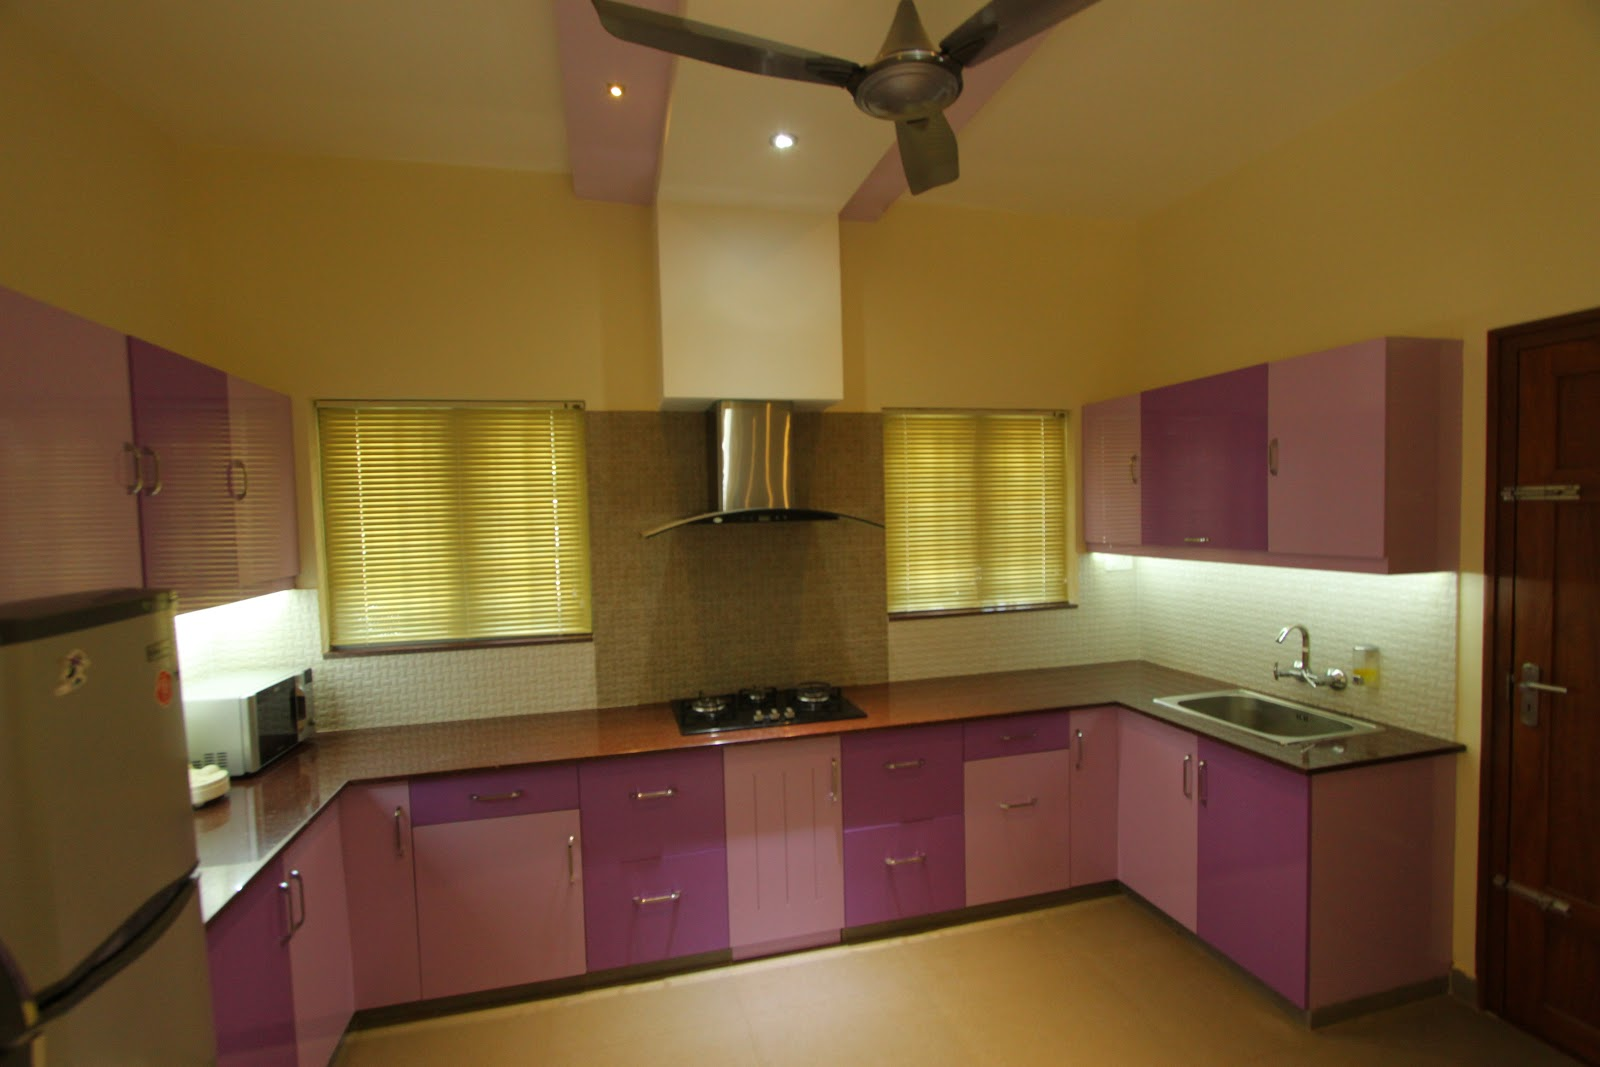 Shilpakala interiors award winning home interior design for Kitchen design kerala